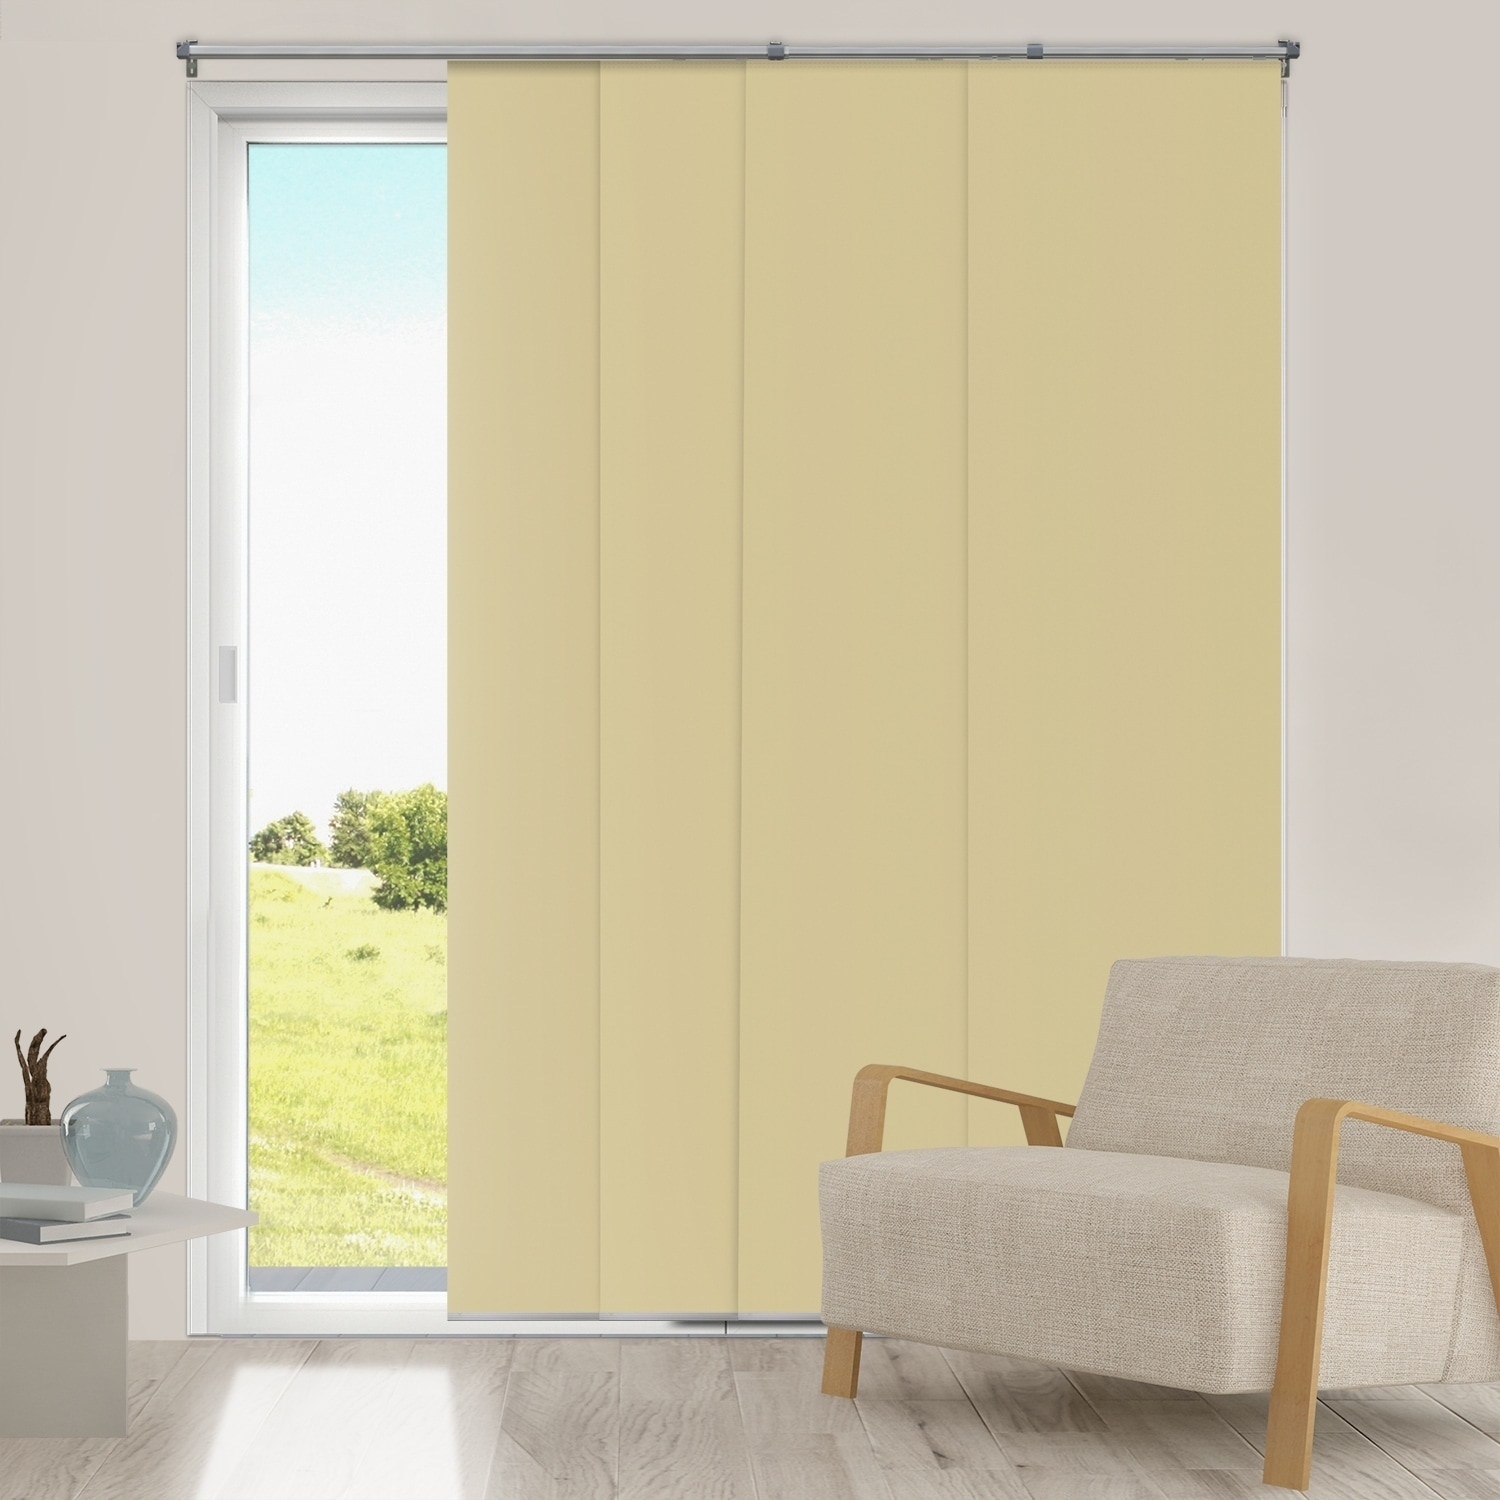 Shop Chicology Adjustable Sliding Panel, Fabric - Thermal, Room ...